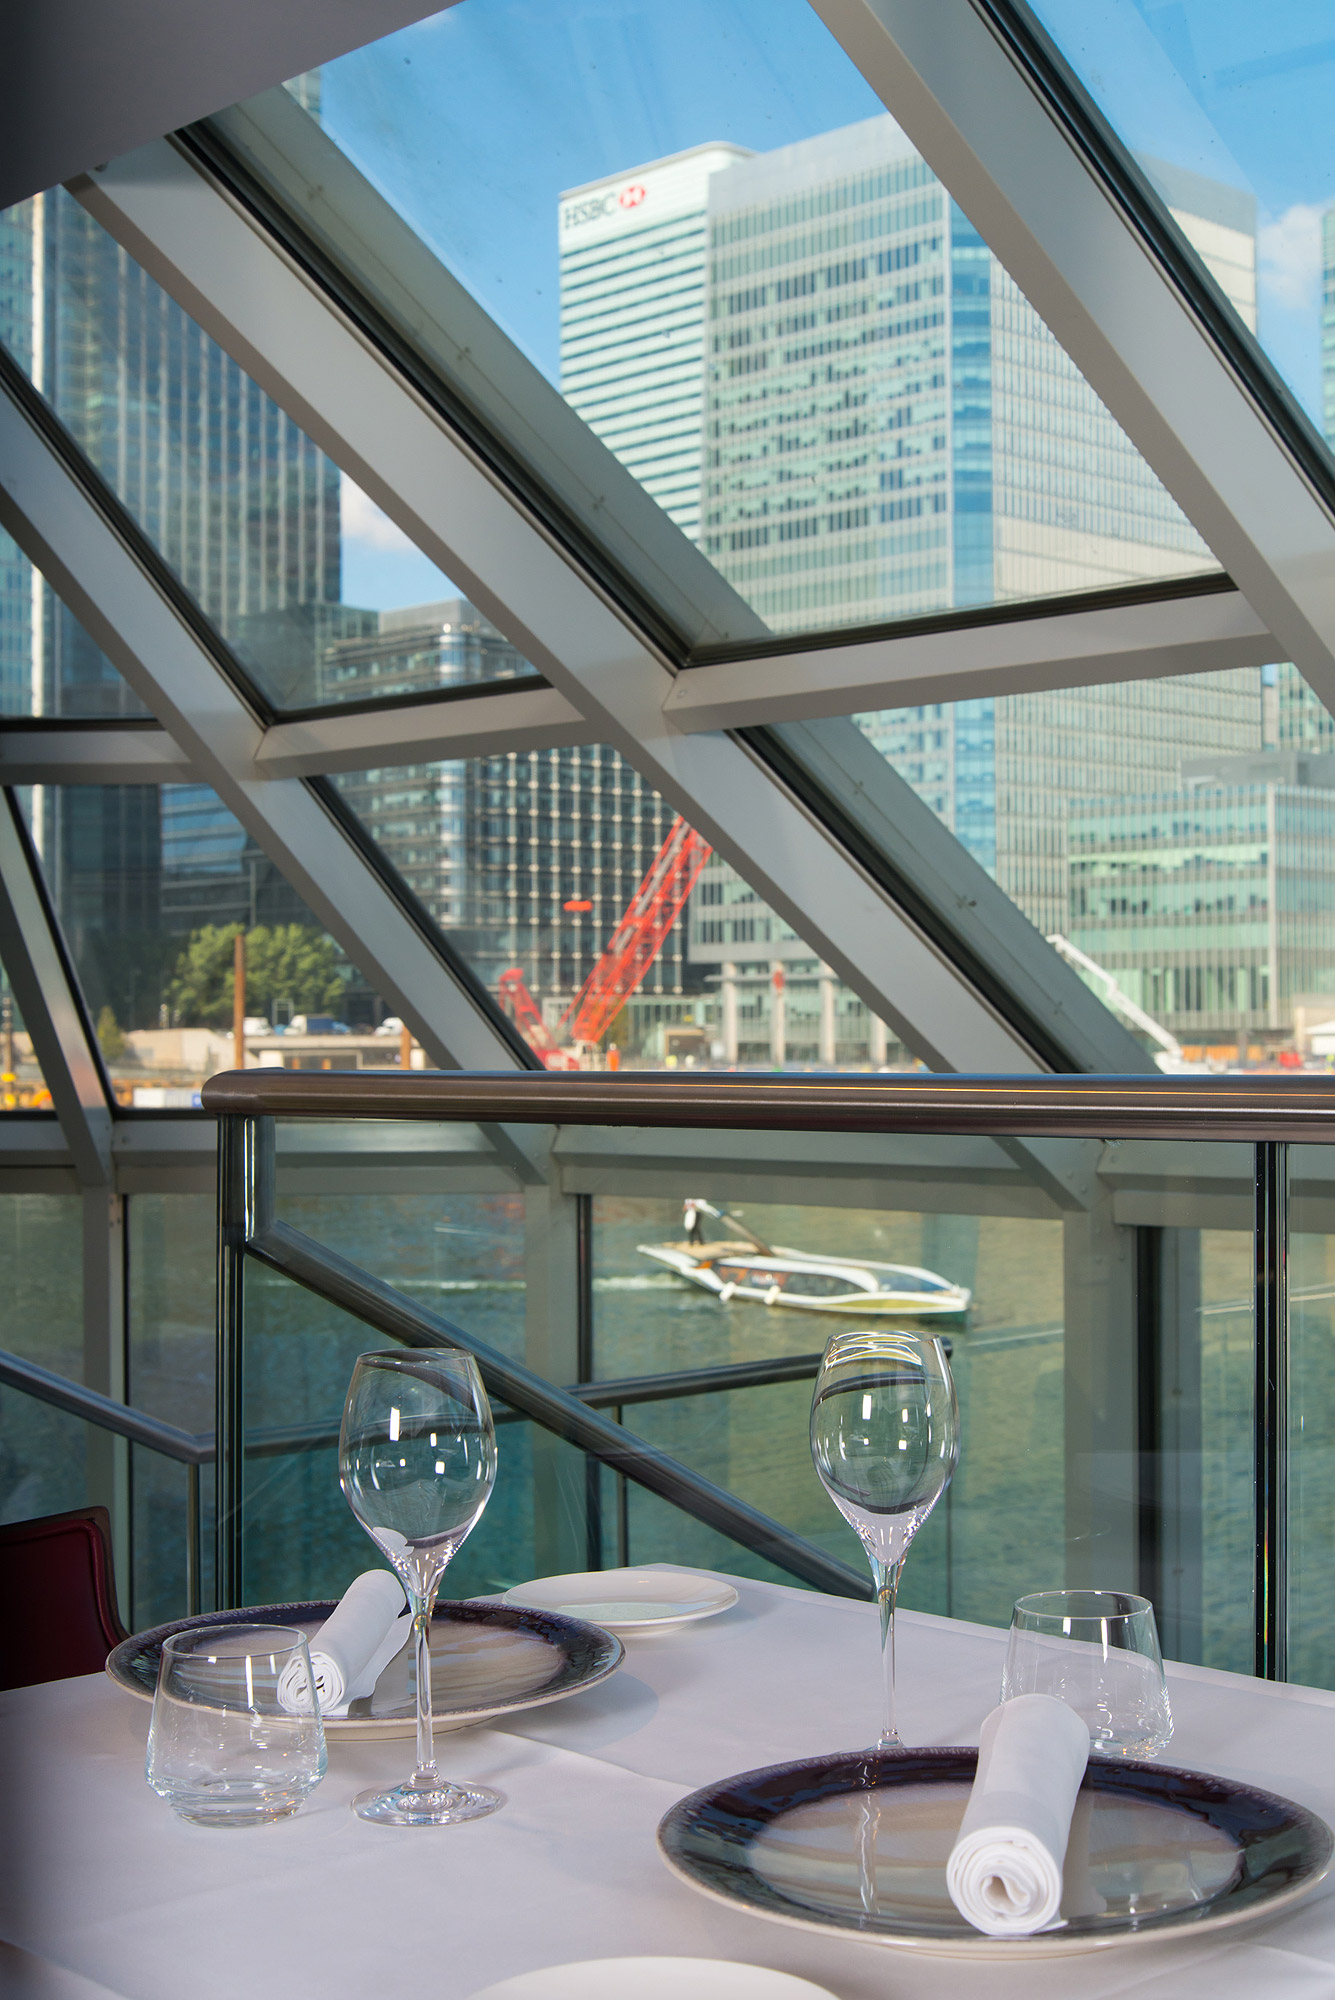 Perched in South Quay, the glass-fronted Bella Cosa restaurant has spectacular cityscape views of Canary Wharf